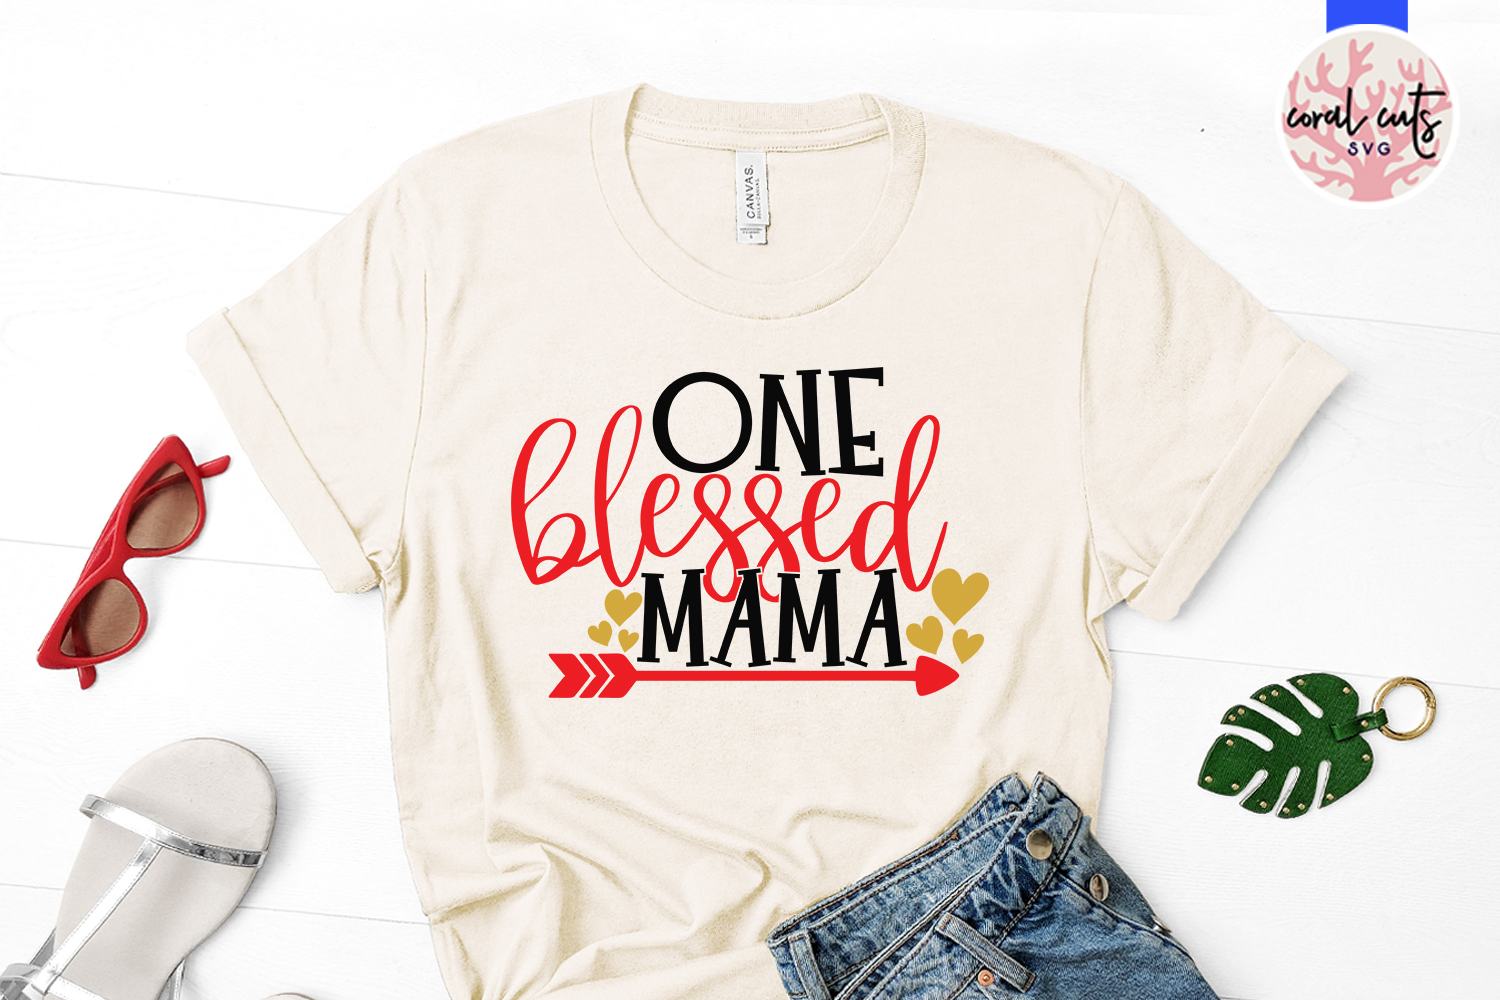 One blessed mama - Mother SVG EPS DXF PNG Cutting File example image 2